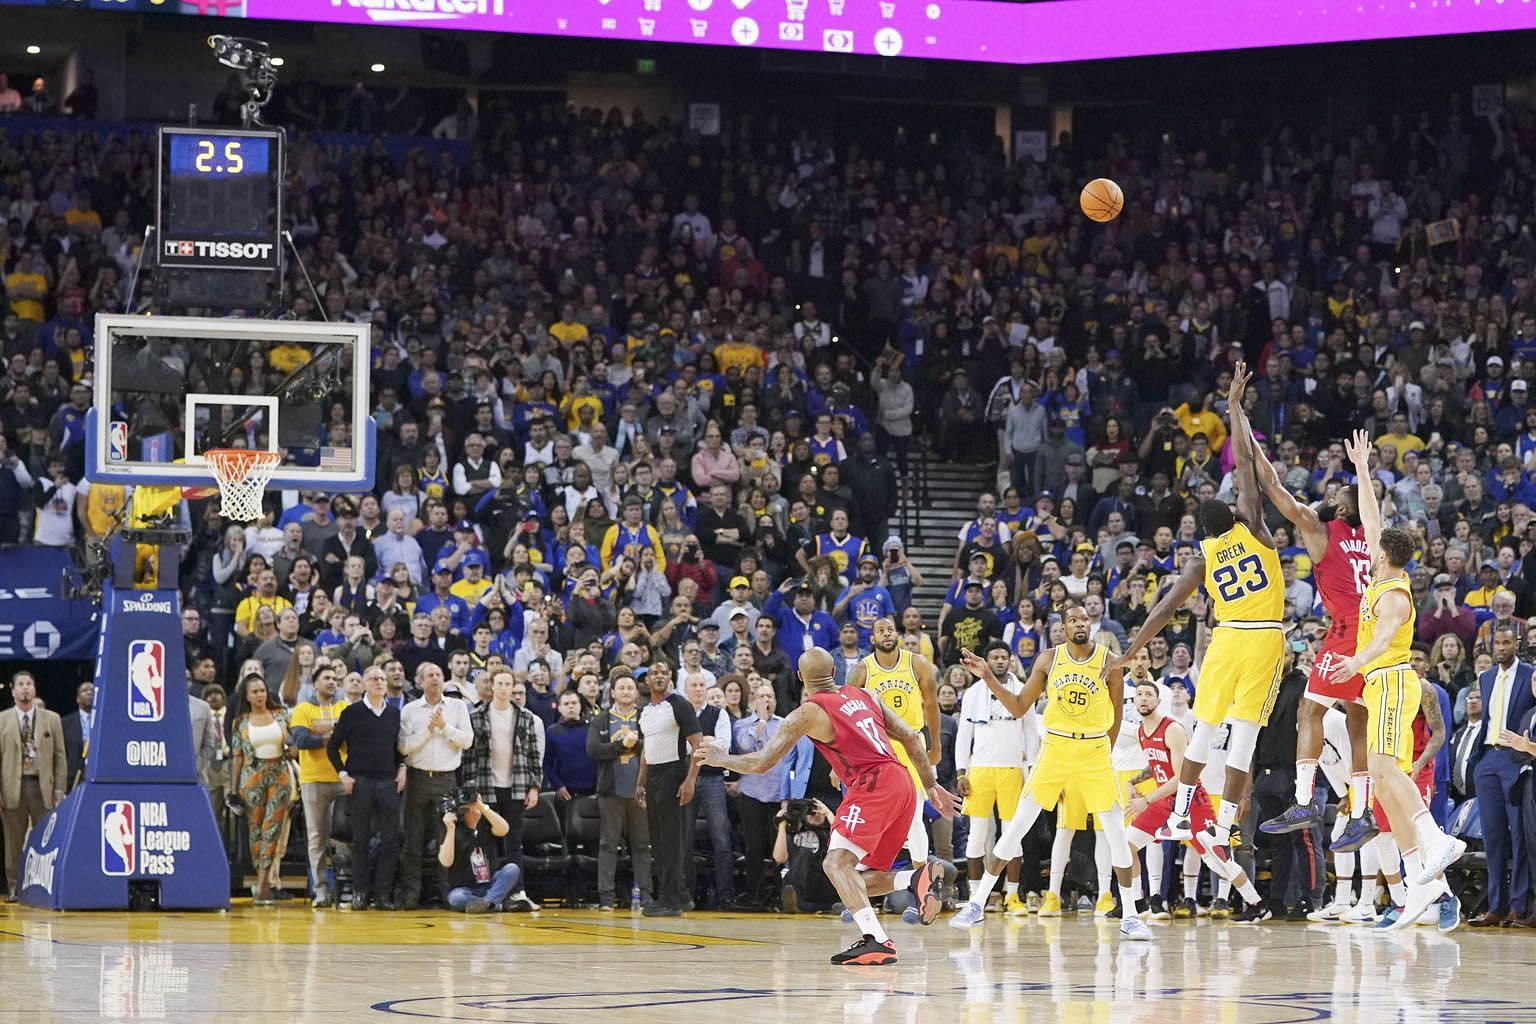 Houston Rockets guard James Harden (13) shooting the game-winning three-pointer, despite being double-teamed by the Golden State Warriors during overtime at the Oracle Arena on Thursday. The Rockets rallied from a 20-point second-half deficit to win